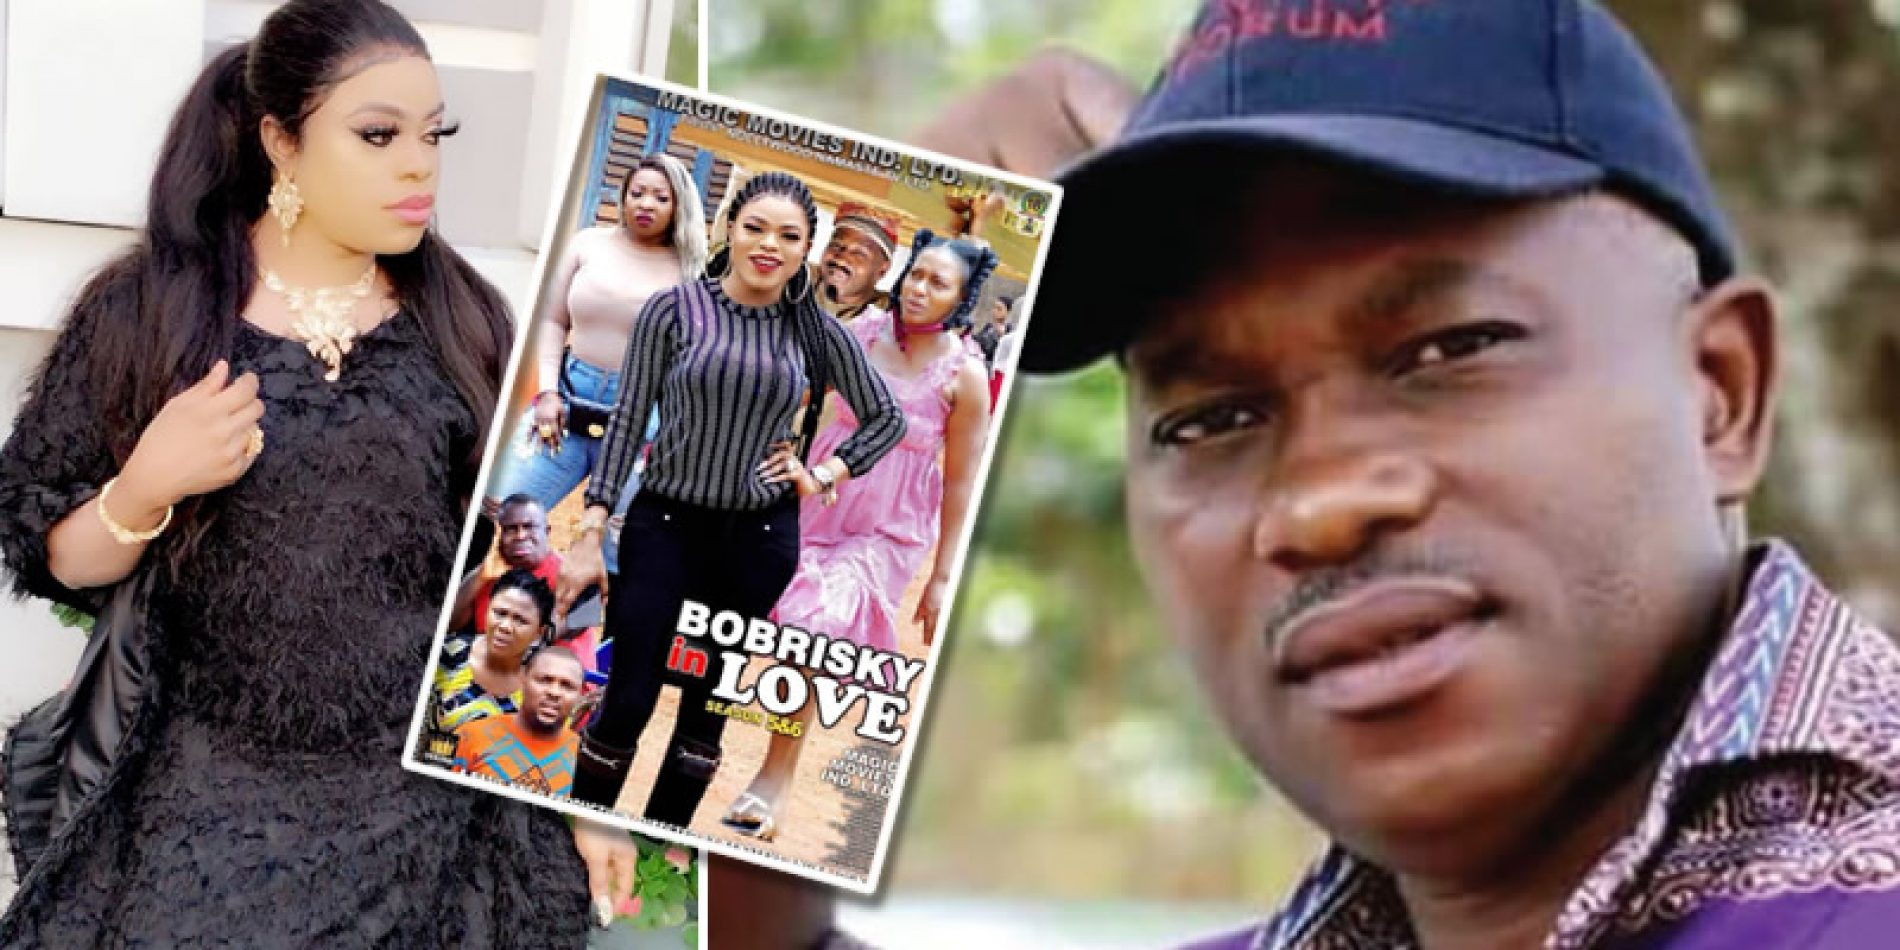 """The Movie Does Not Promote Homosexuality."" Director of 'Bobrisky In Love' talks about casting Bobrisky and what his film is truly about"